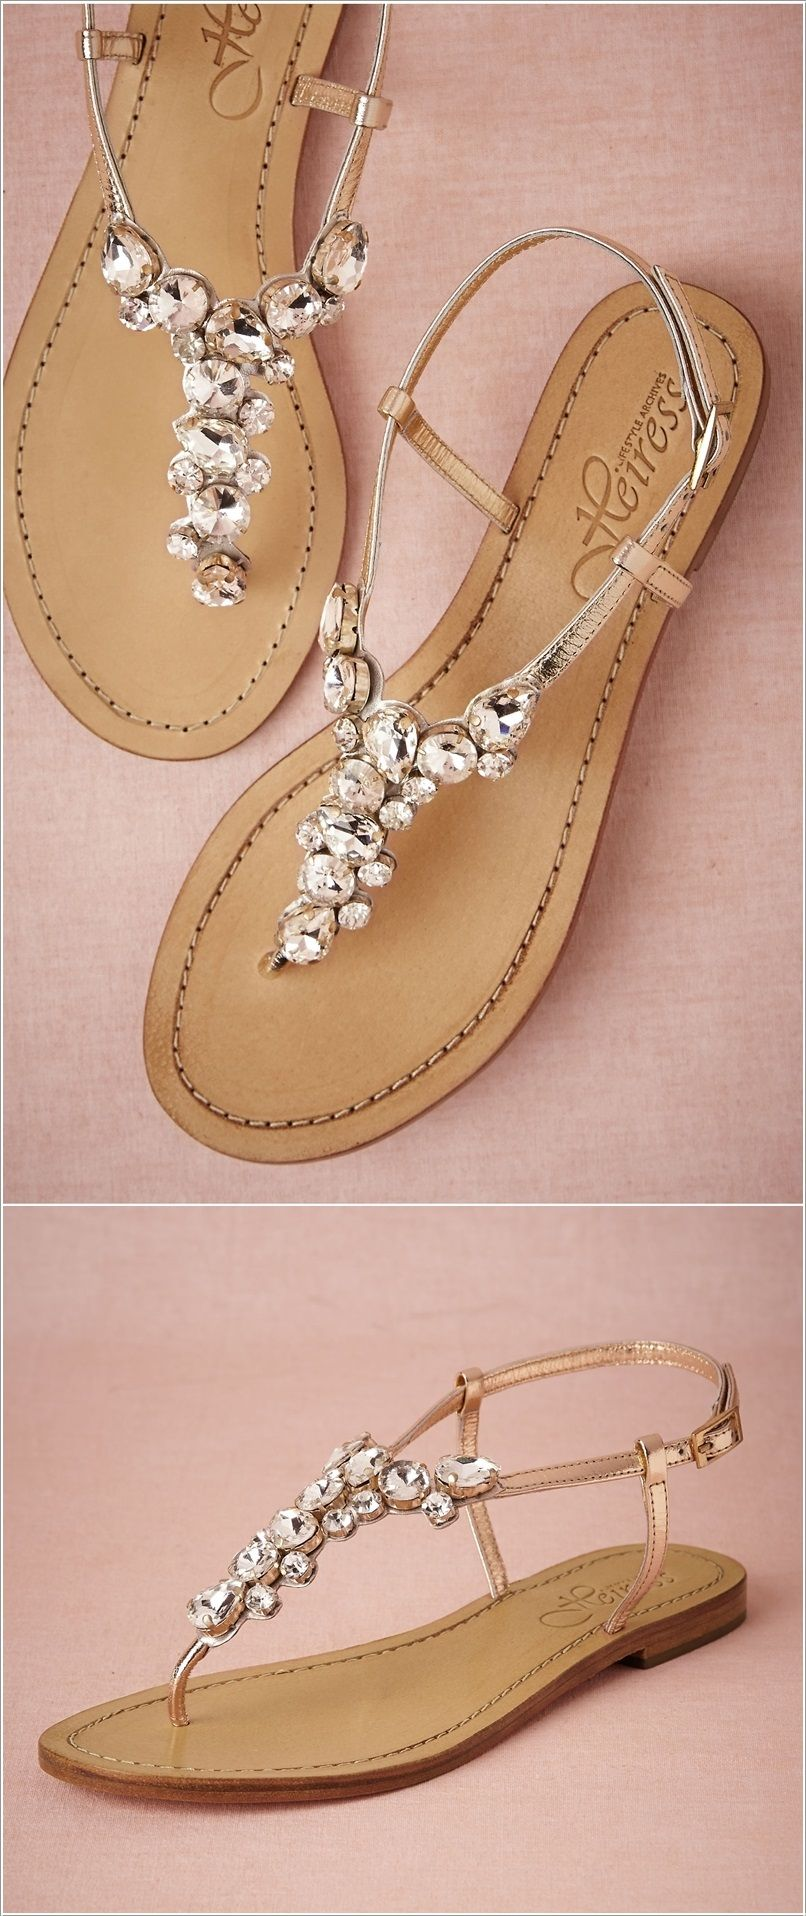 Every Bride Will Love to Wear These Wedding Flat Sandals | Fashion